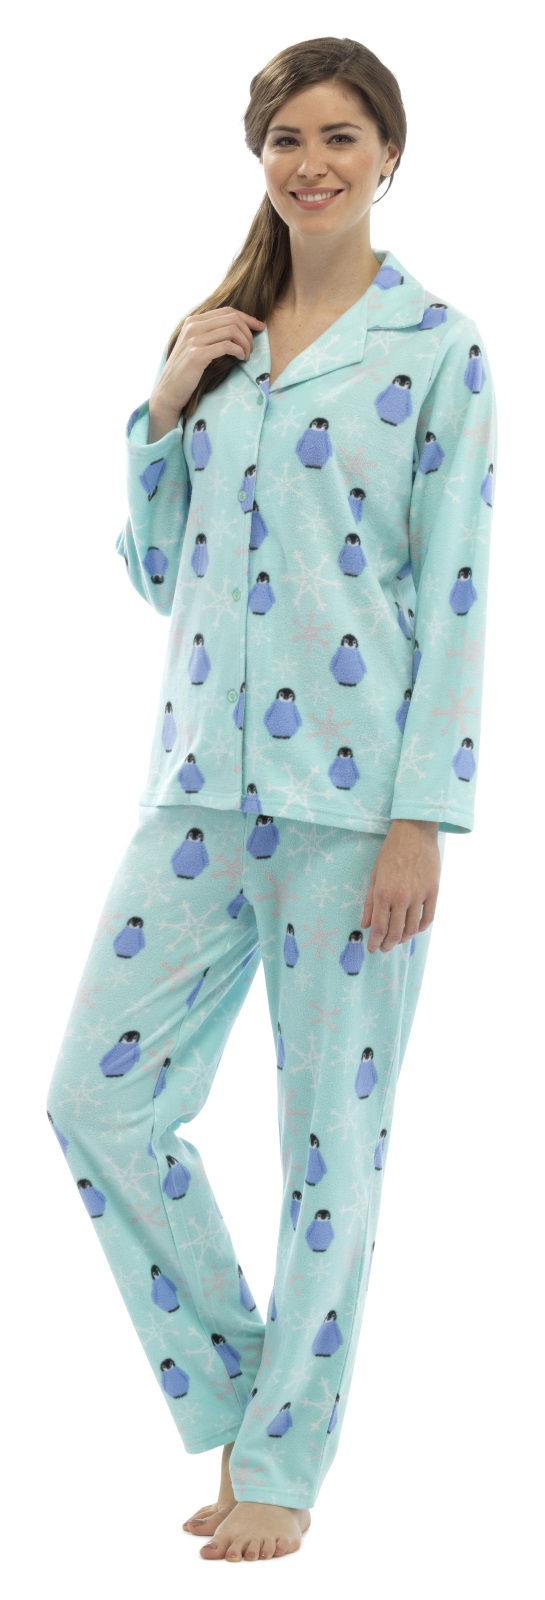 Shop for Womens Nightwear at ASDA George. Our wide range includes dressing gowns, womens onesies, nightdresses, slippers and womens pyjamas. Order online today!